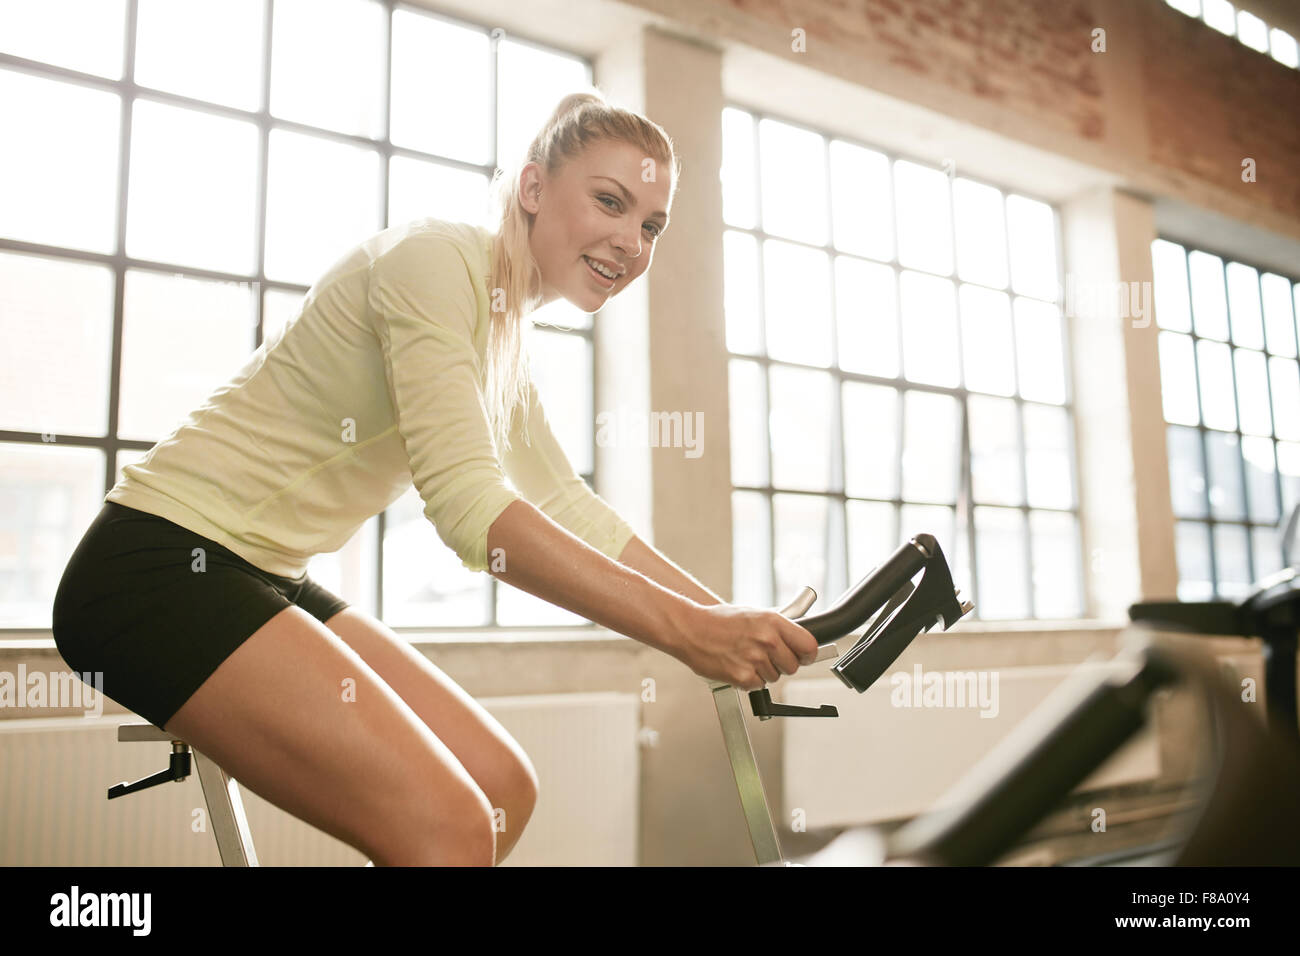 Indoor shot of a sportive woman on bicycle in gym. Young female athlete working out on spinning bike at health club. - Stock Image